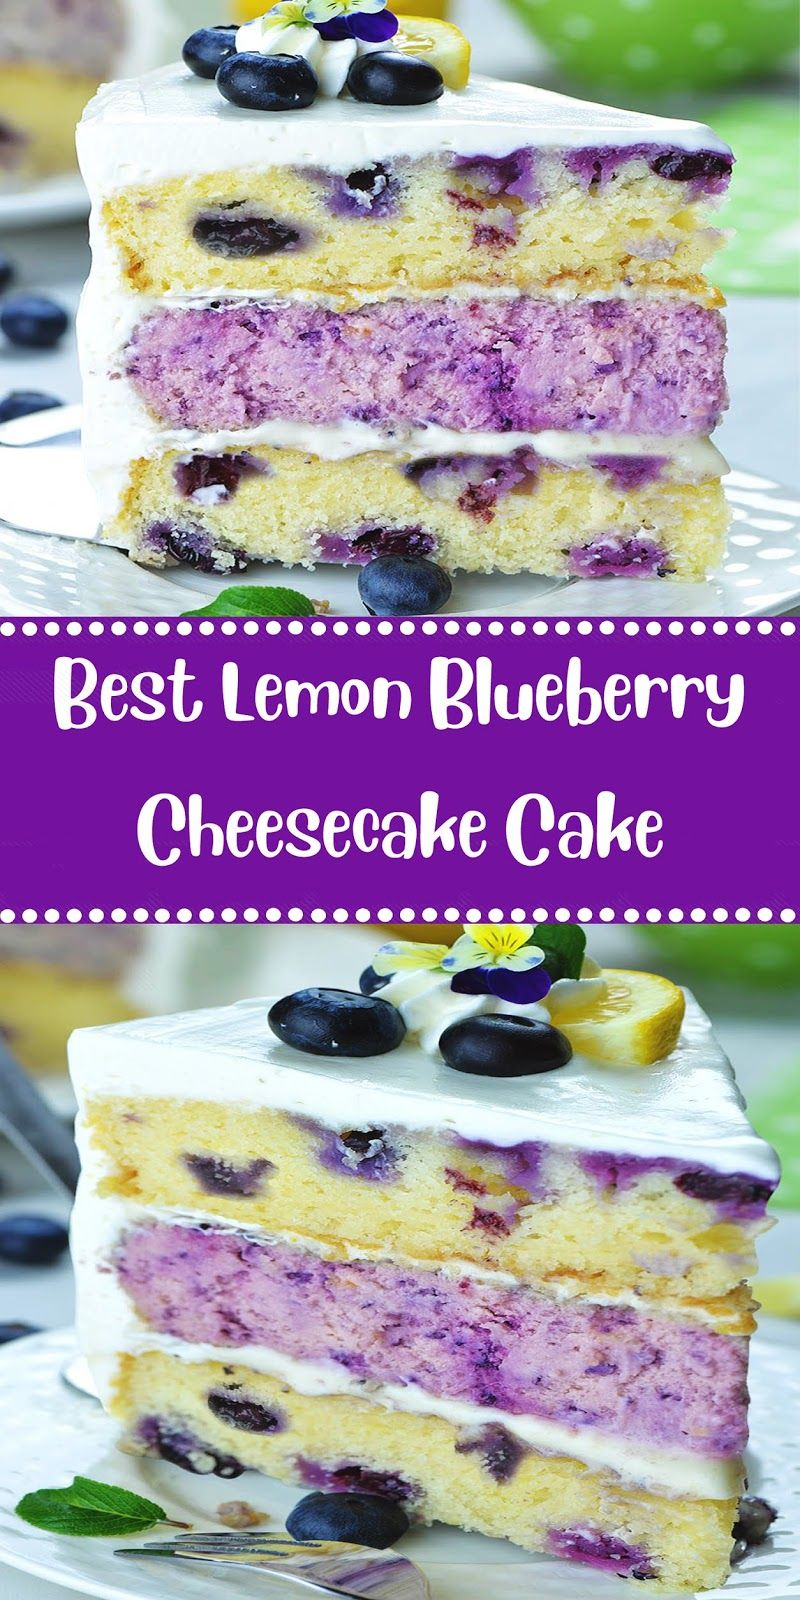 Best Lemon Blueberry Cheesecake Cake #lemonblueberrycheesecake